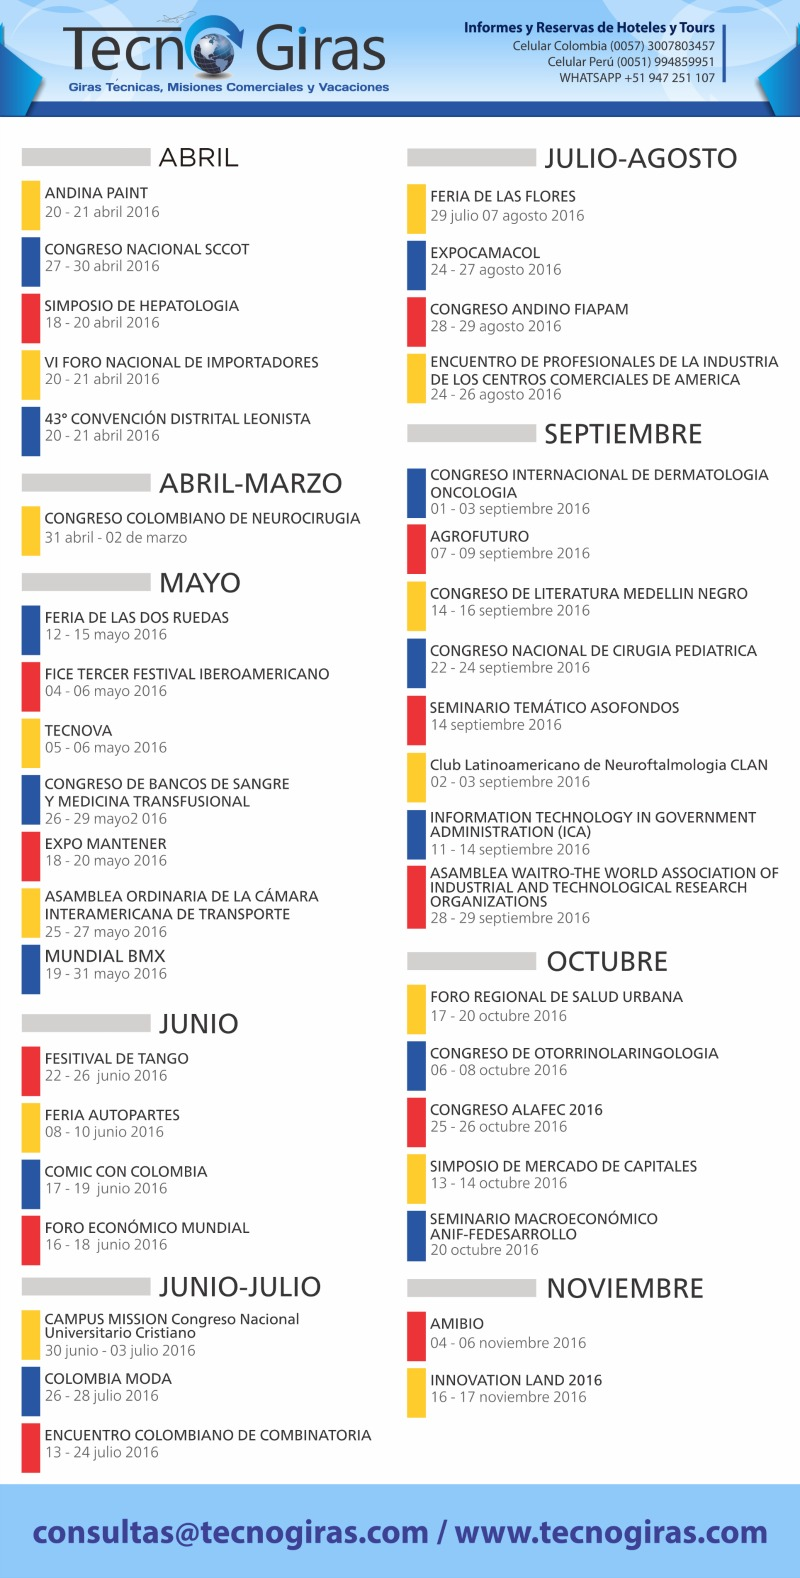 EVENTOS Y CONGRESOS COLOMBIA 2016